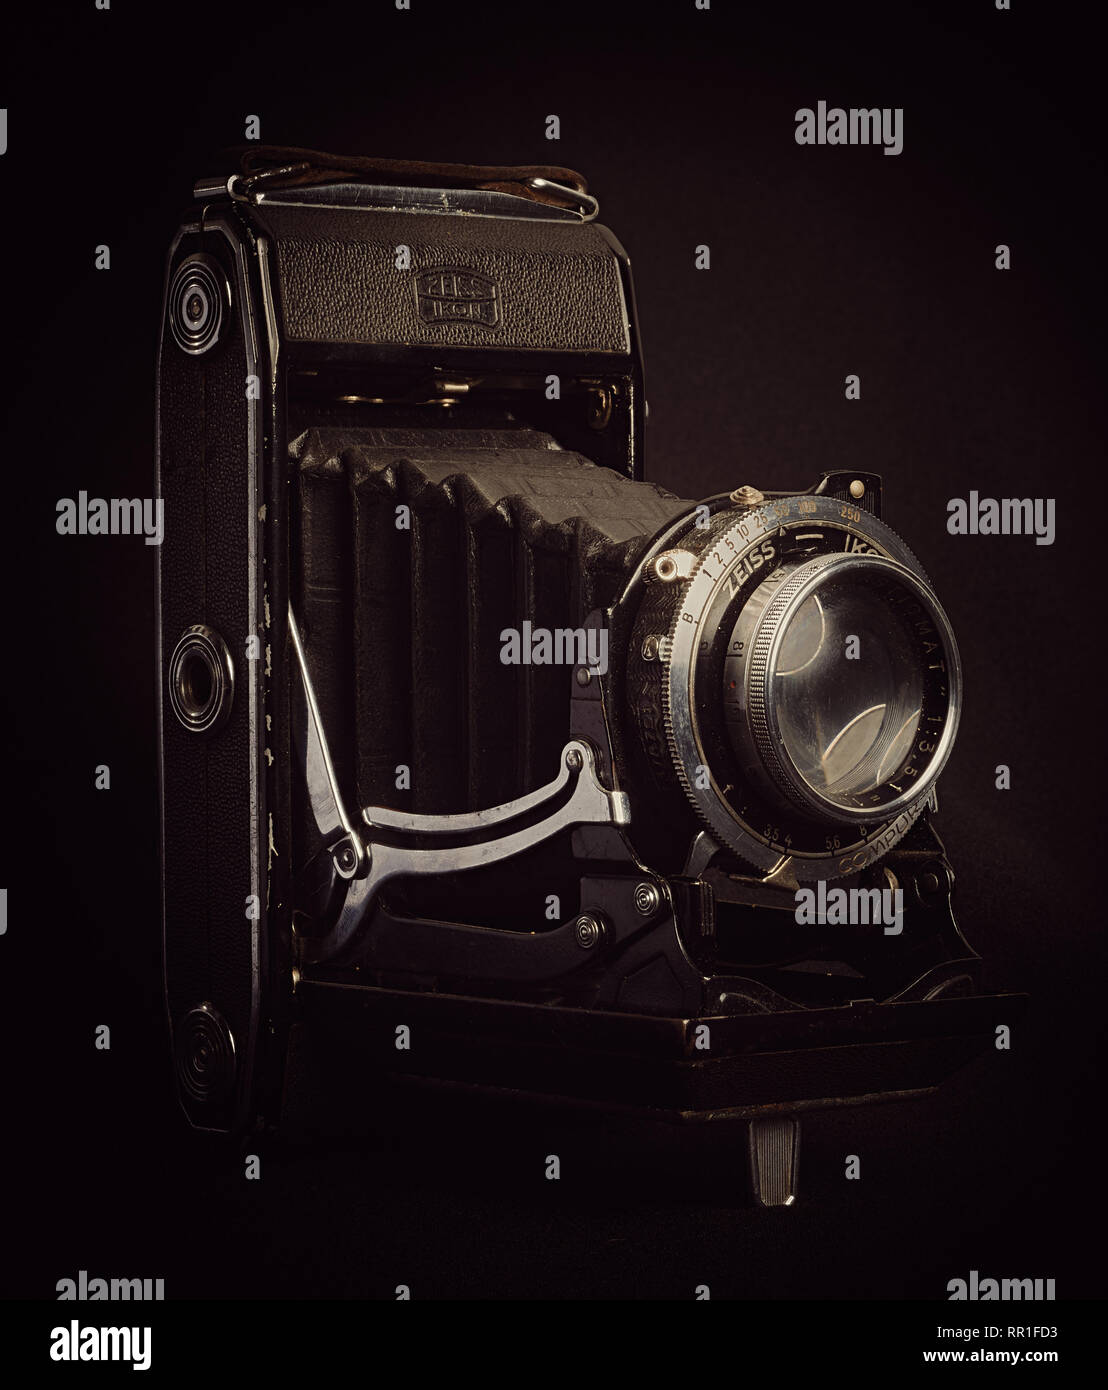 Vertical aspect right side view of a vintage bellows film camera against a black background. - Stock Image